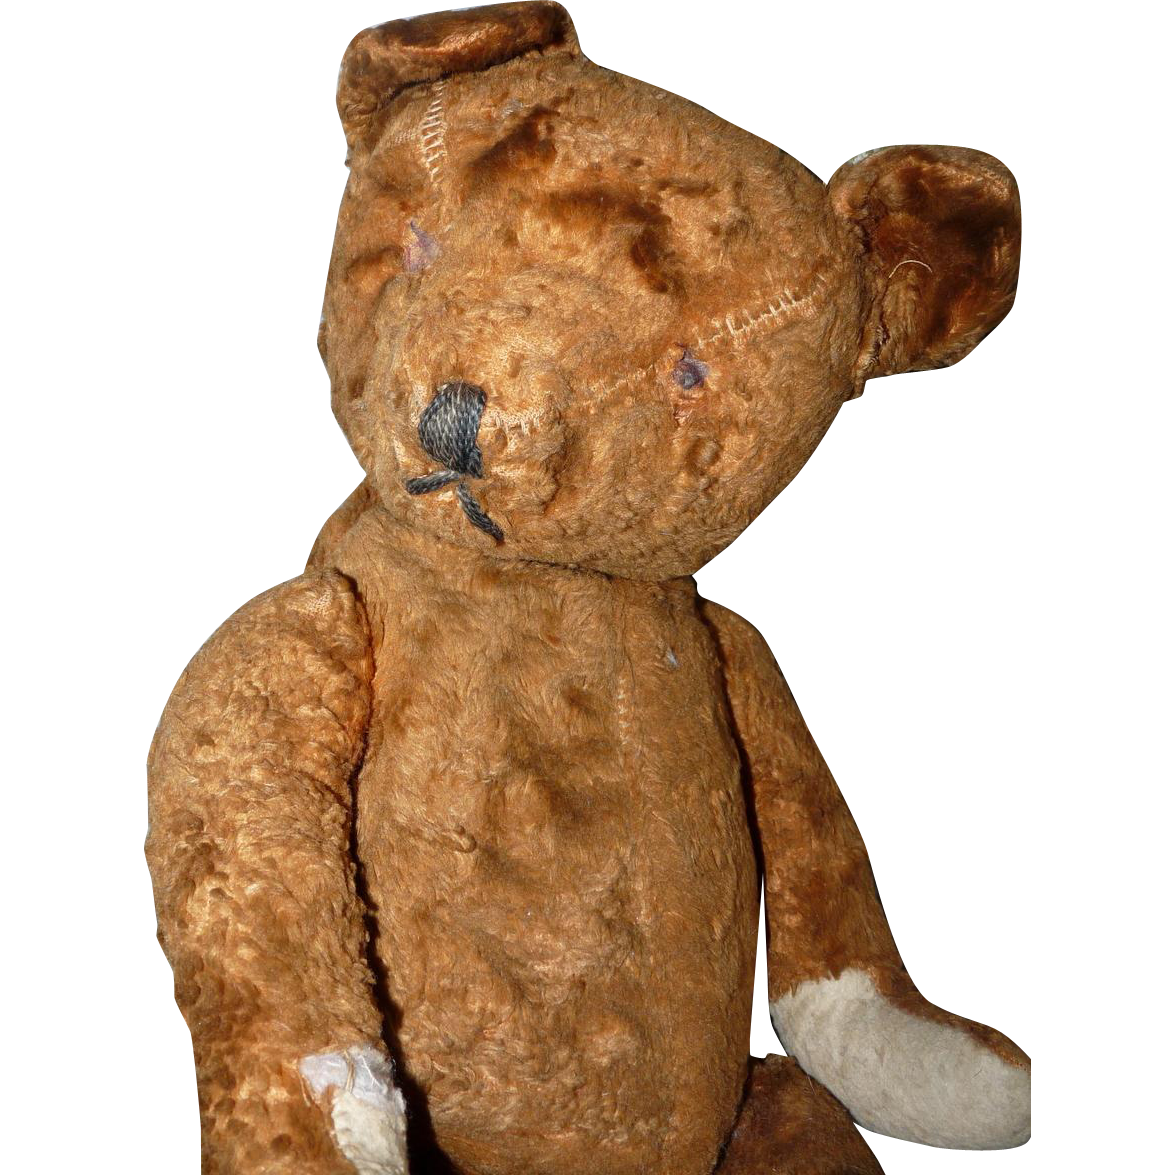 Antique American Teddy Bear